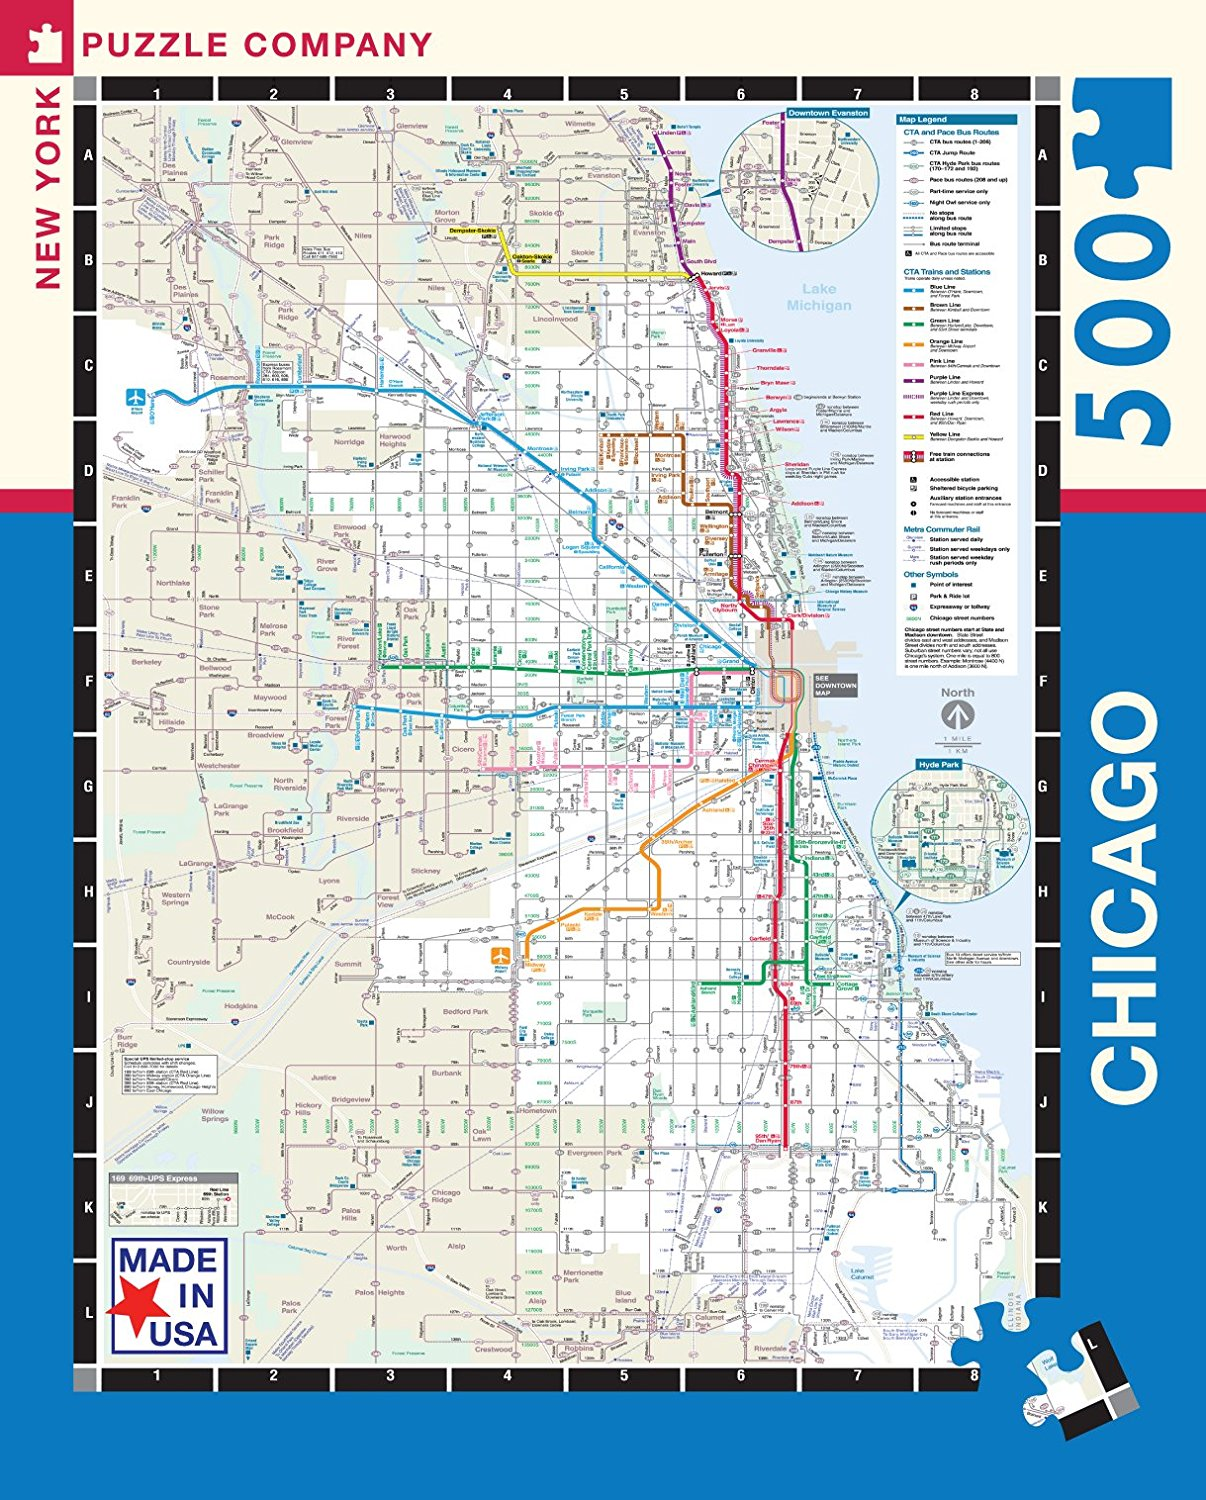 New York Puzzle Company - Chicago Transit CTA Transit Puzzle - 500 Piece Jigsaw Puzzle